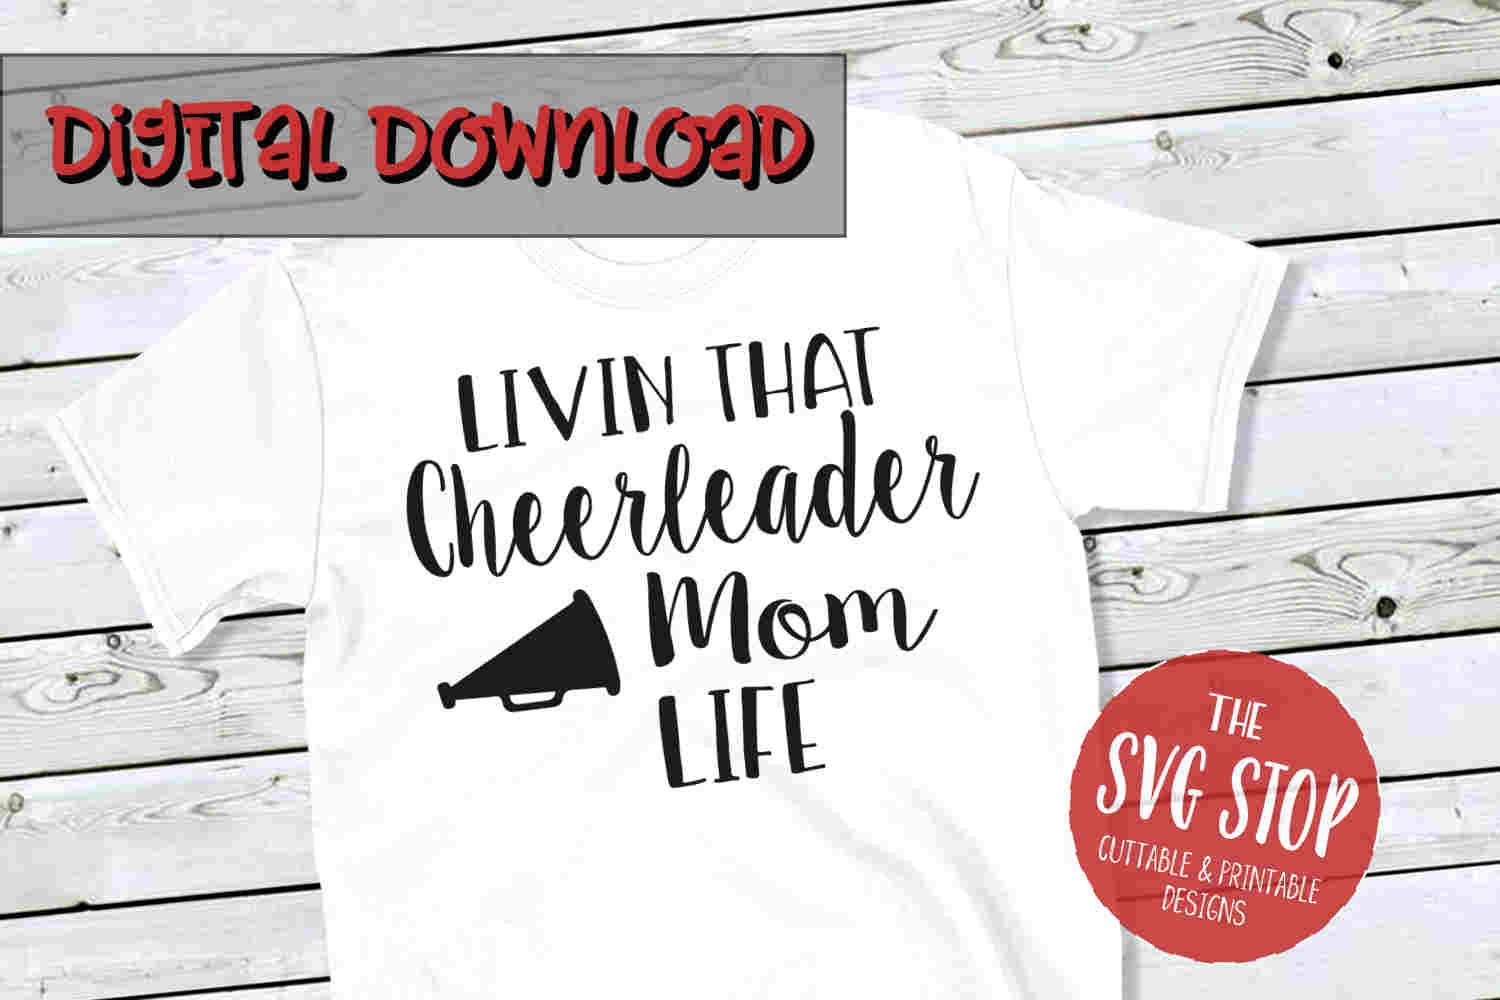 Cheerleader Mom Life -SVG, PNG, DXF example image 1